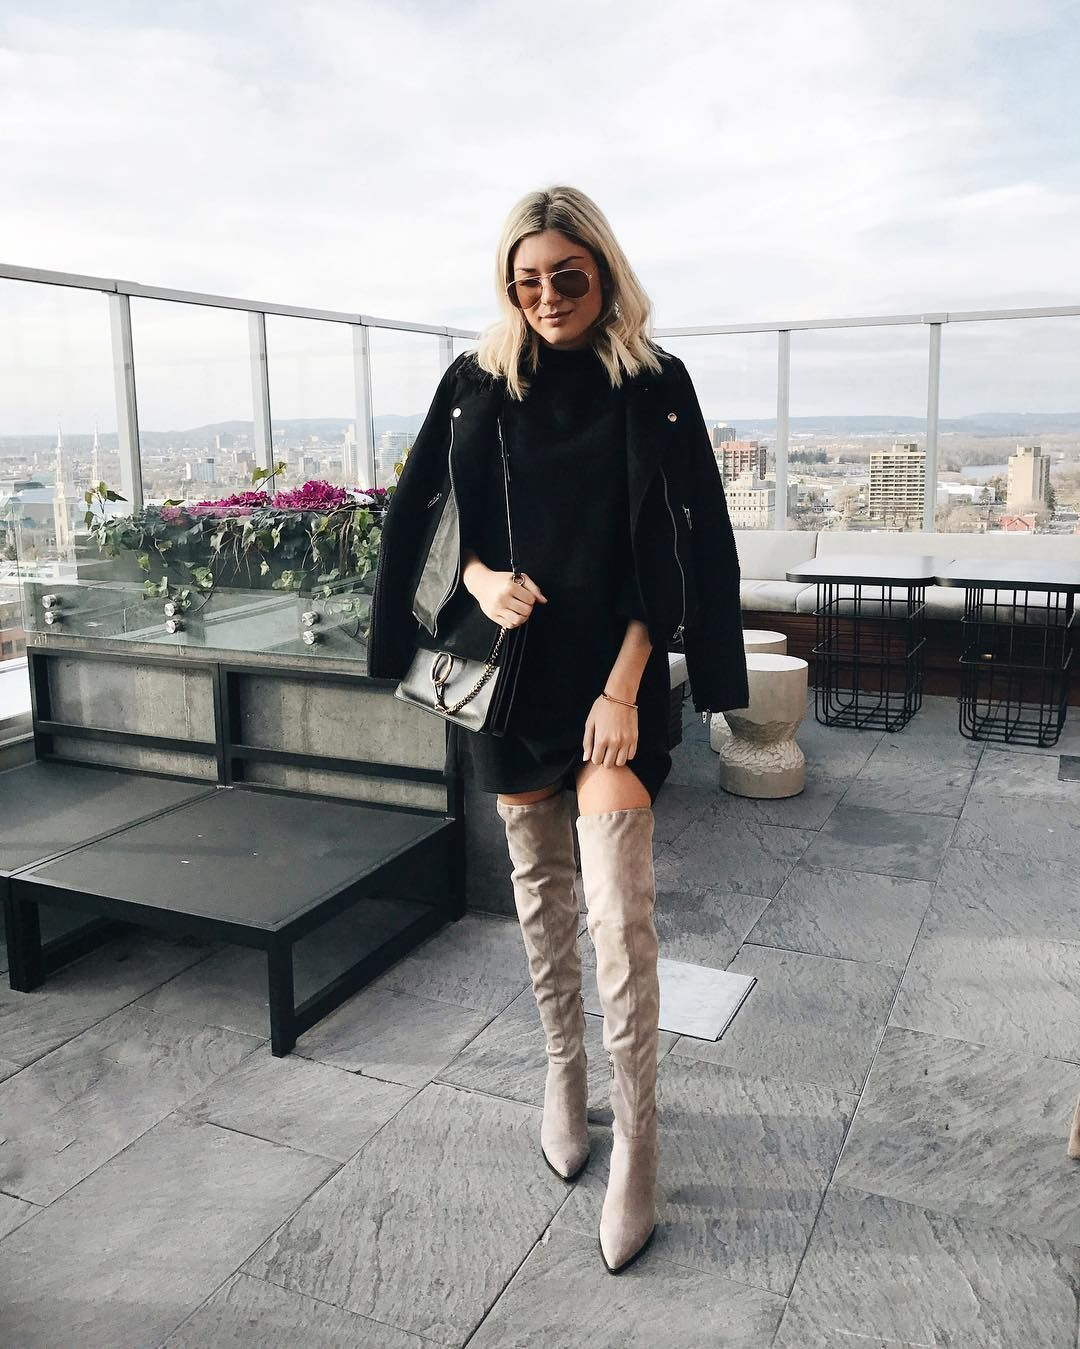 style blogger & content creator | Currently in: LA ...